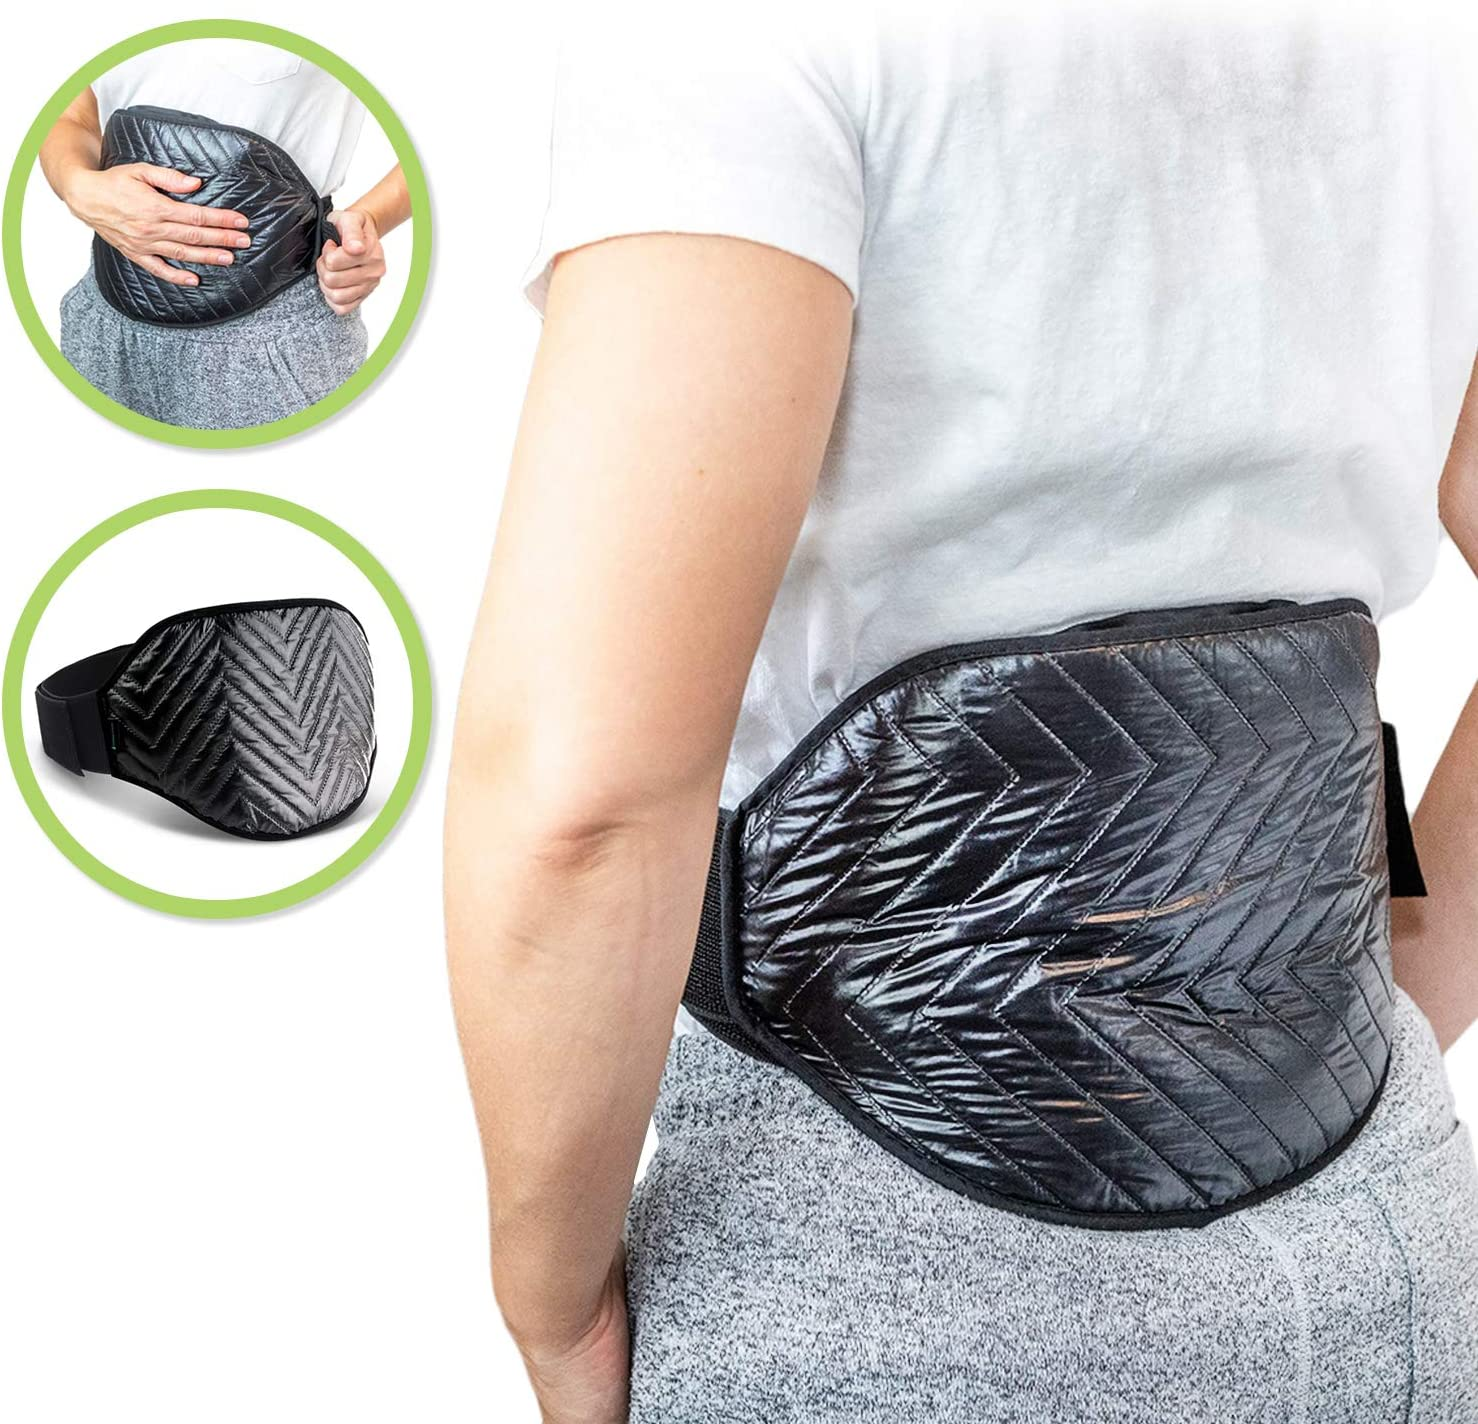 Large Heating and Cooling Reusable Wrap by Soothing Company for Back Pain, Stomach Cramps, Sore Neck, Shoulders, Legs, Joint and Muscle Pain- Hot and Cold Therapy to Support Healing Injuries